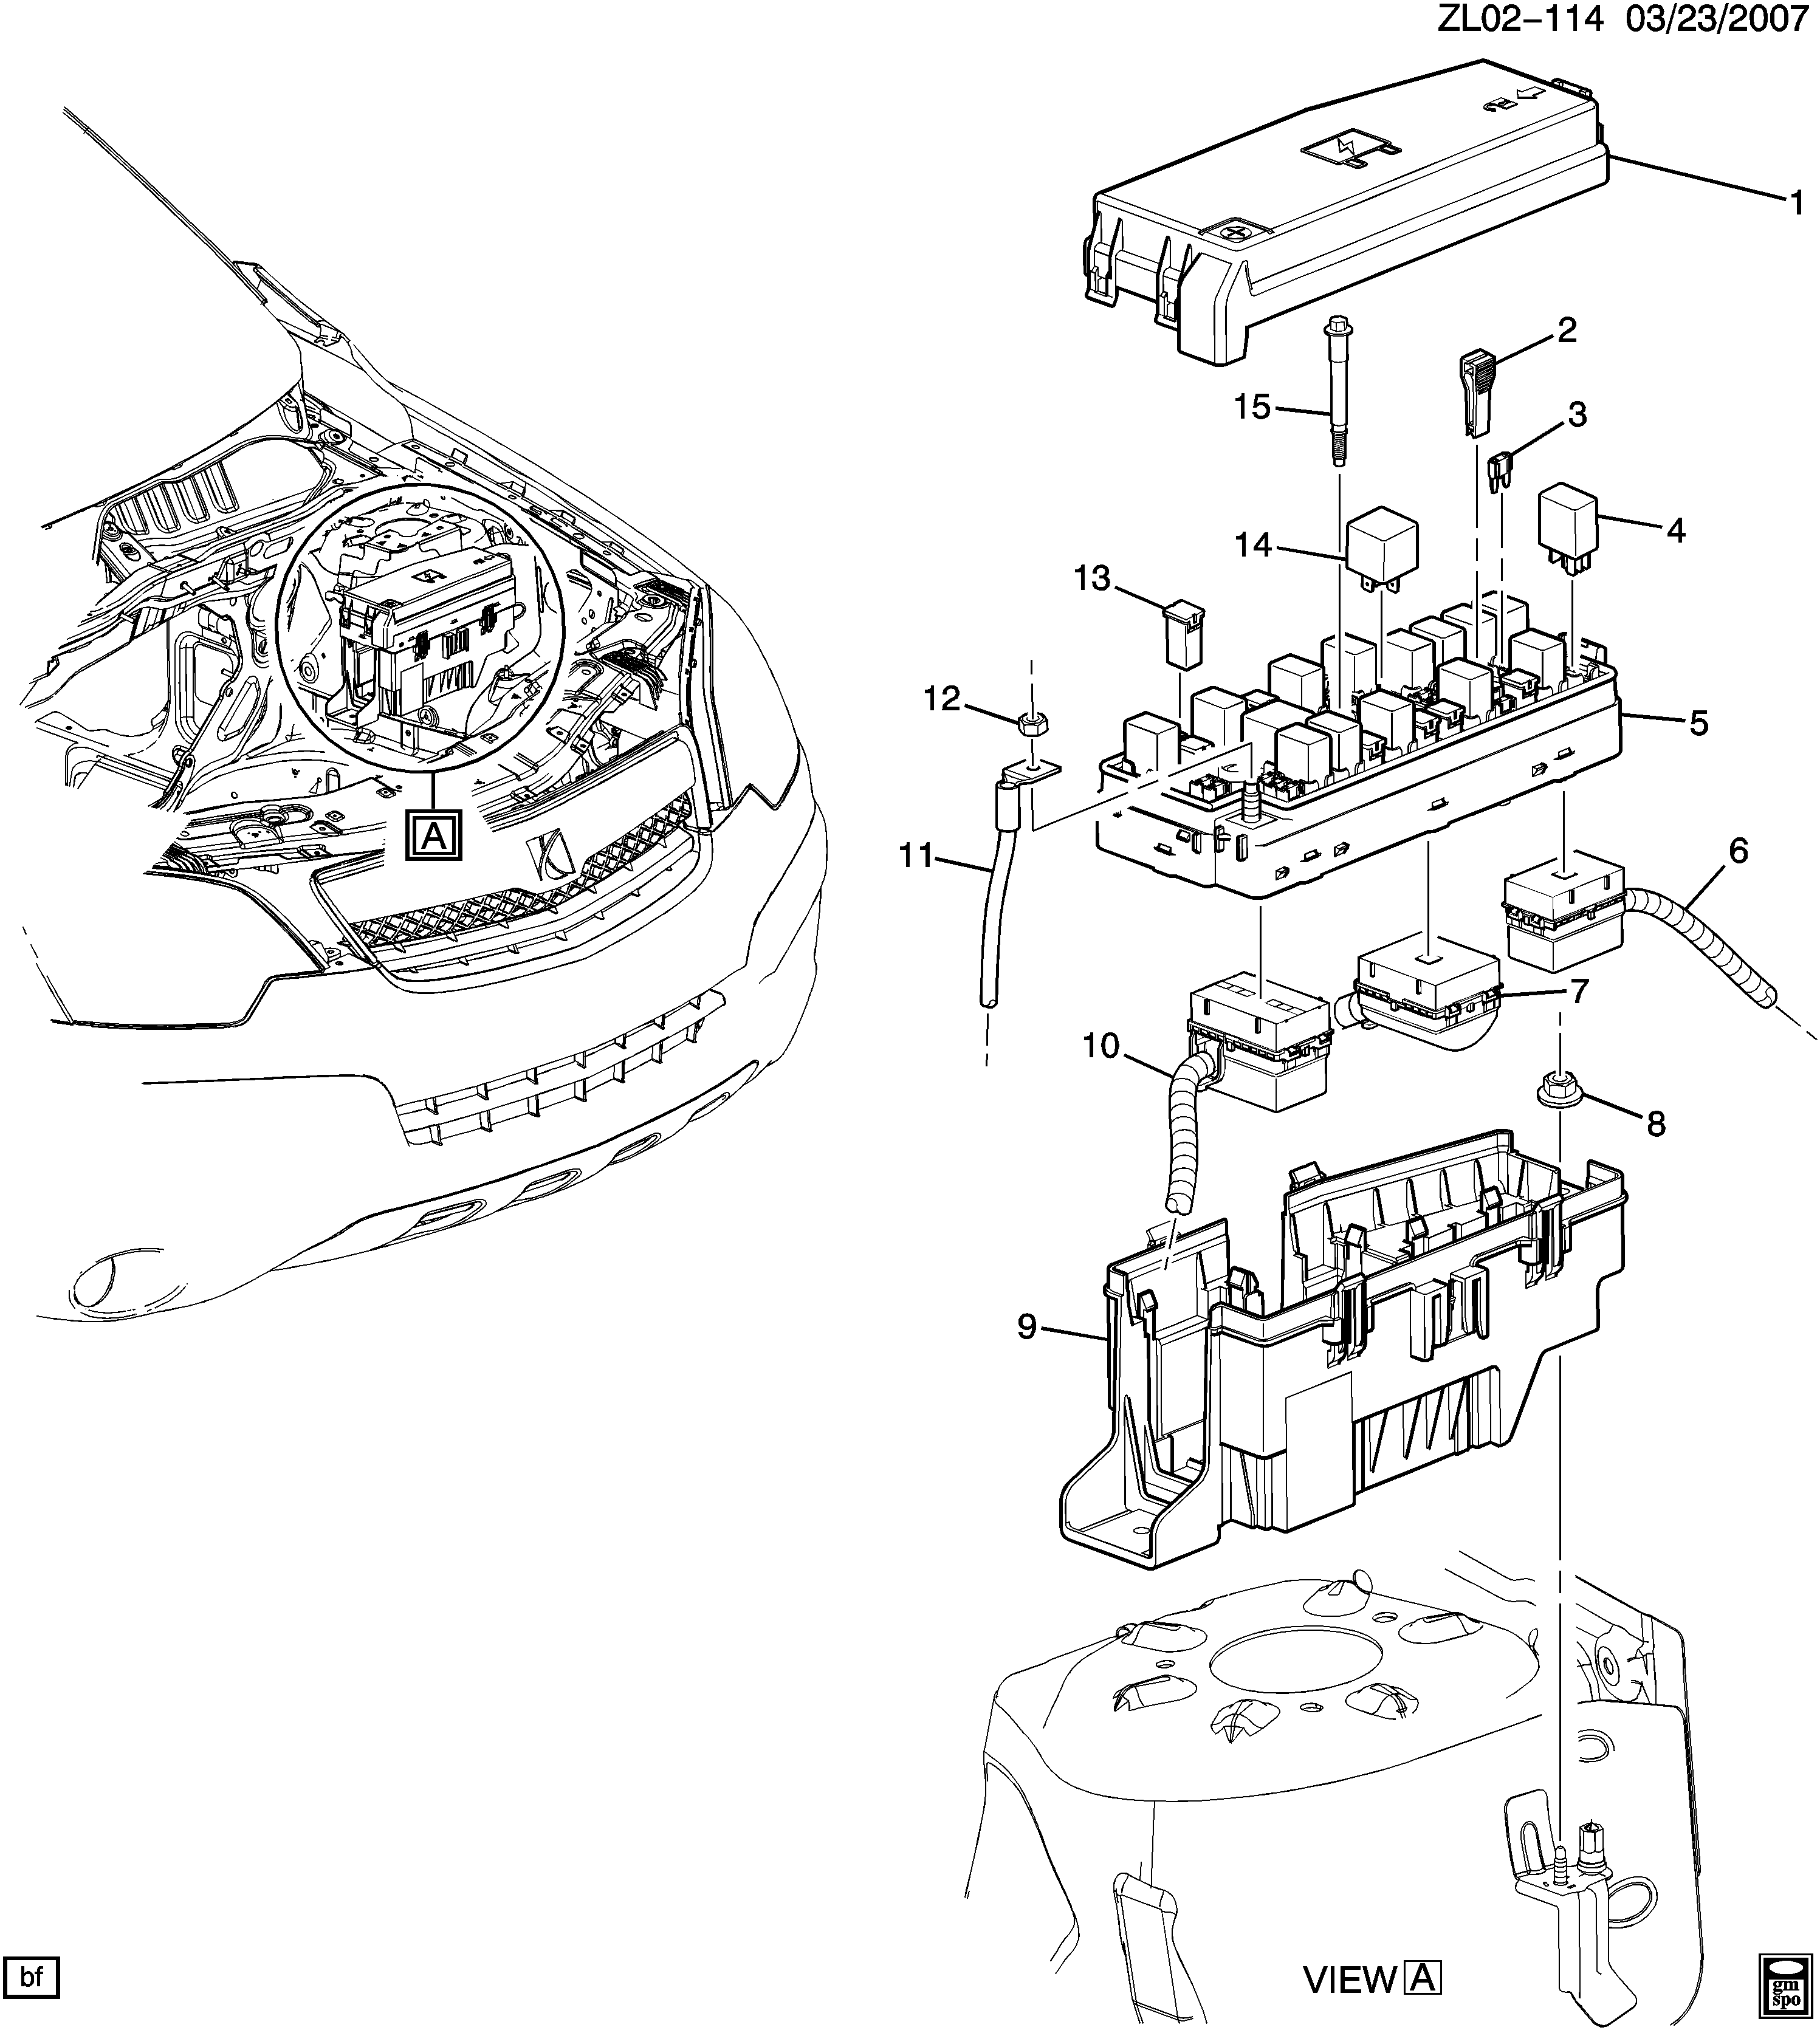 2012-2015 LF,LR RELAYS/ENGINE COMPARTMENT